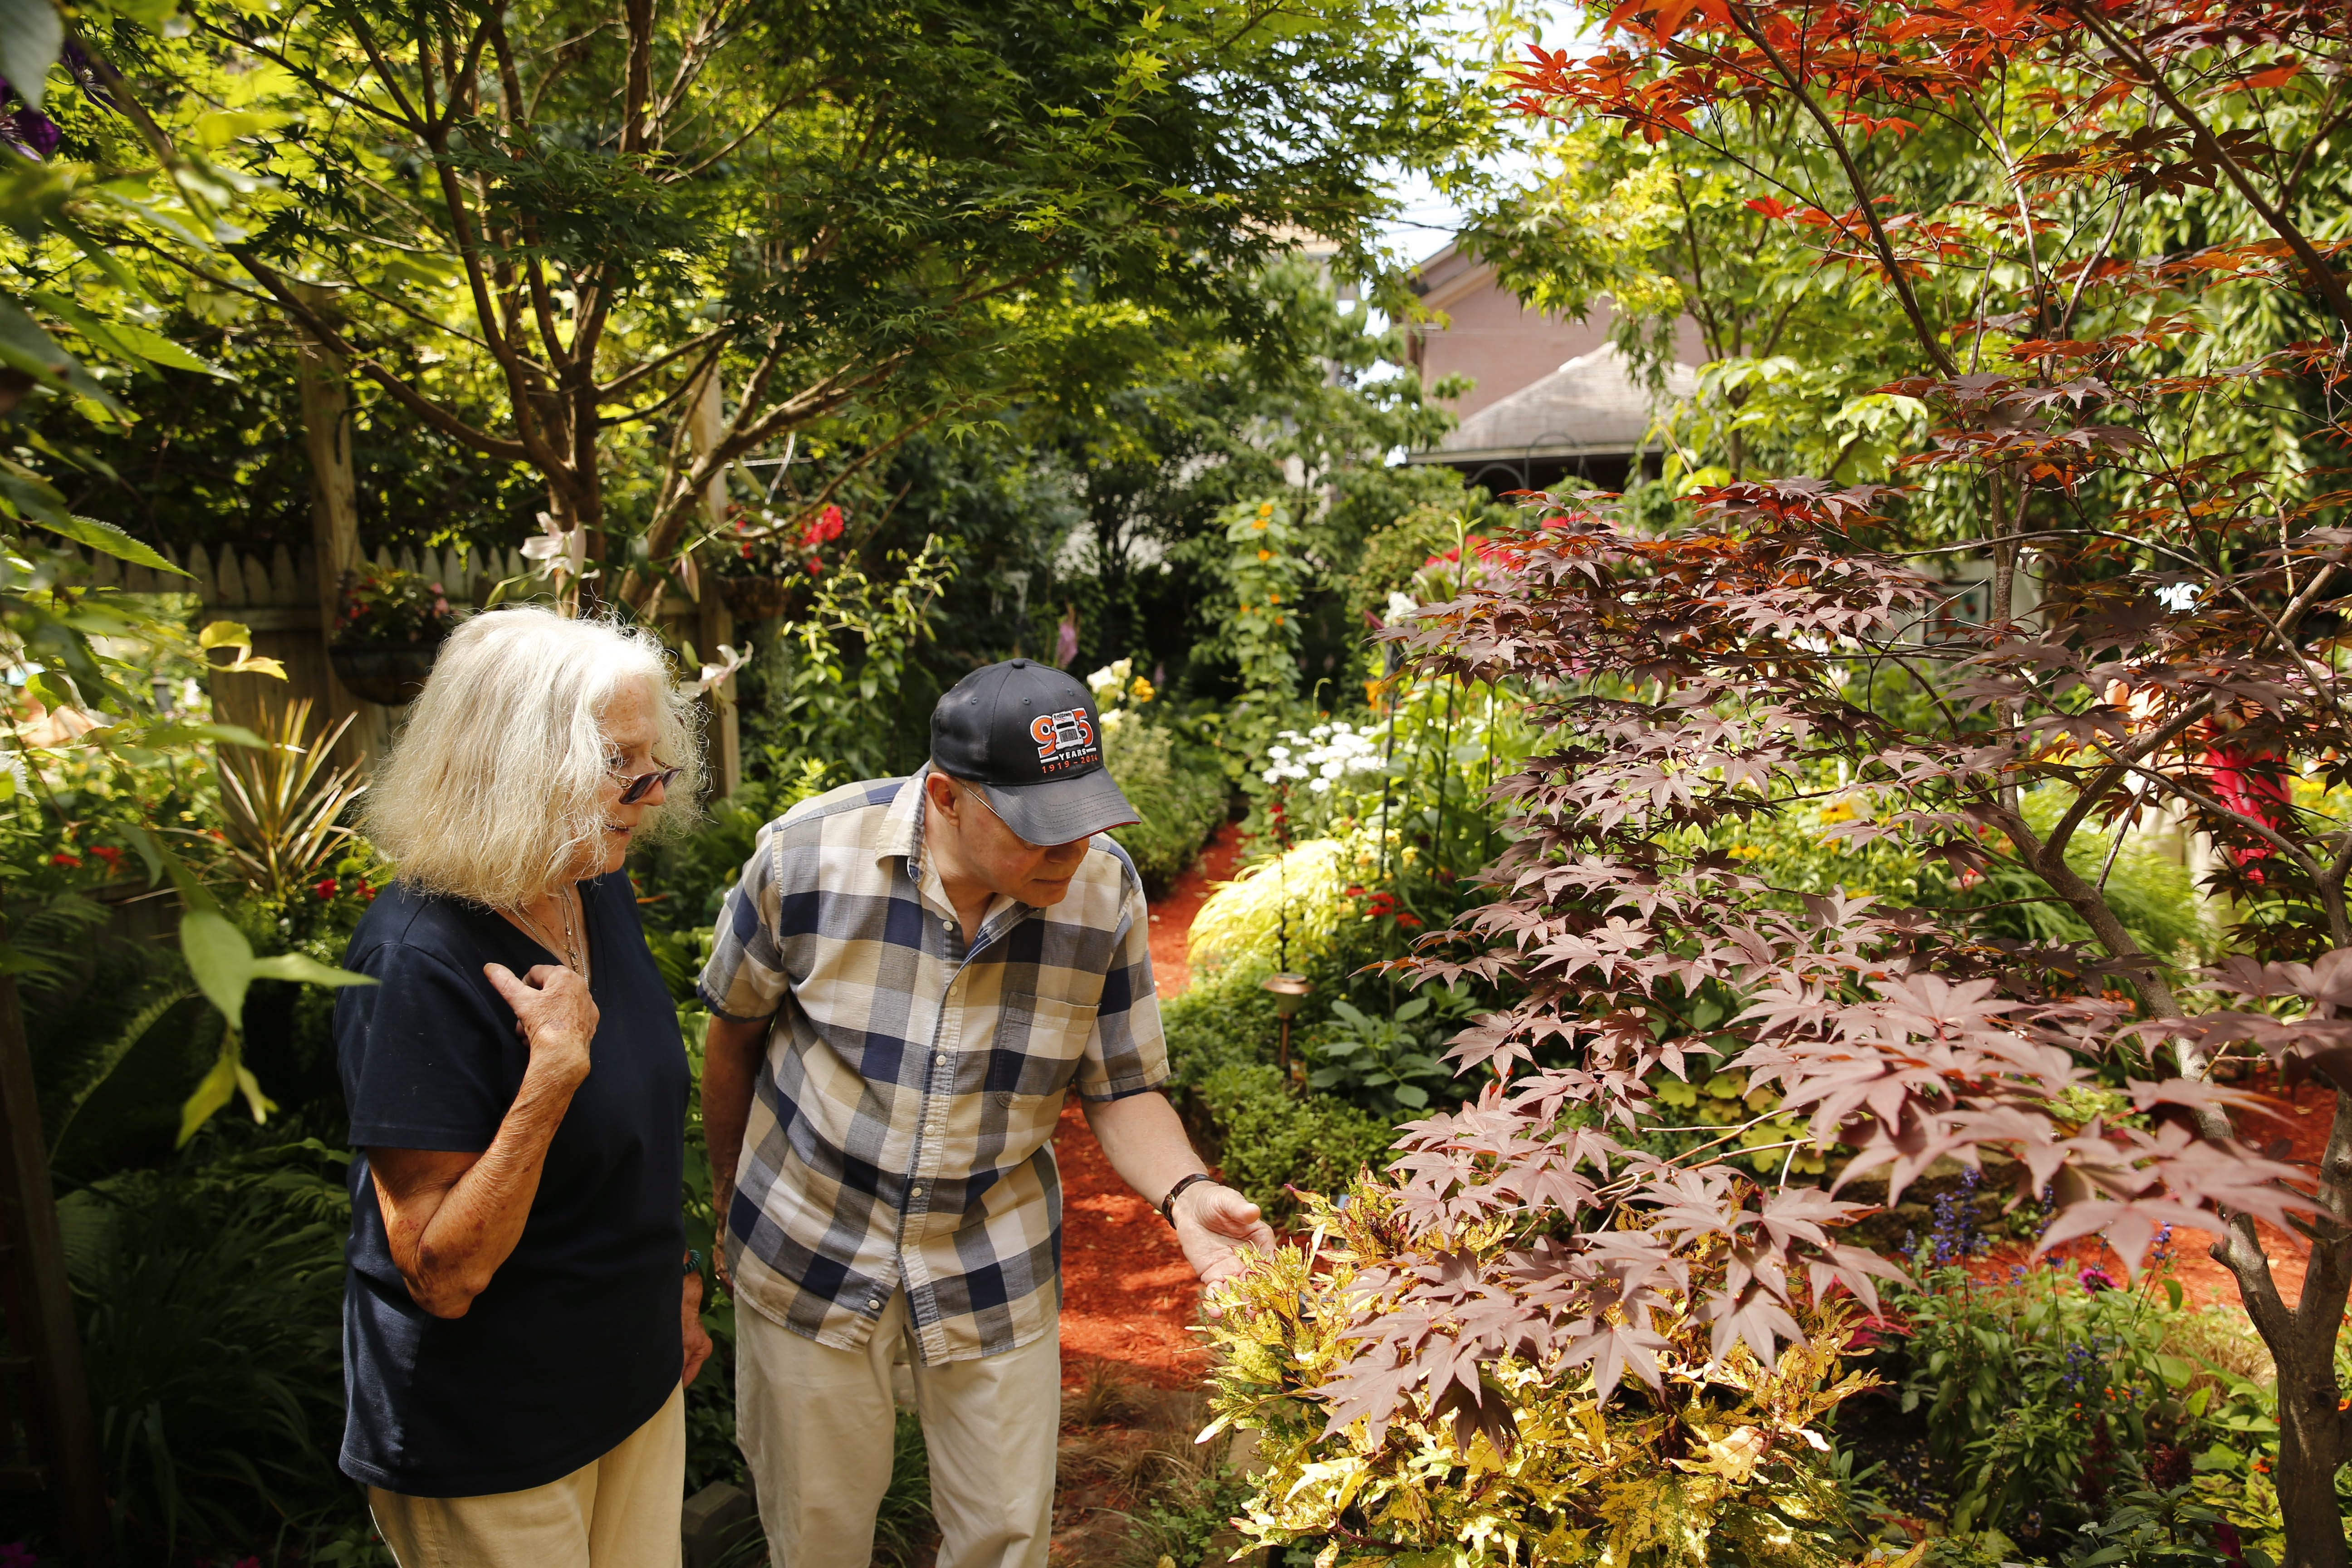 Neighbor Edith Bartlett and David Krellner tour the garden of Jim Ecker on Johnson Park during last year's Garden Walk.  (Derek Gee/Buffalo News)